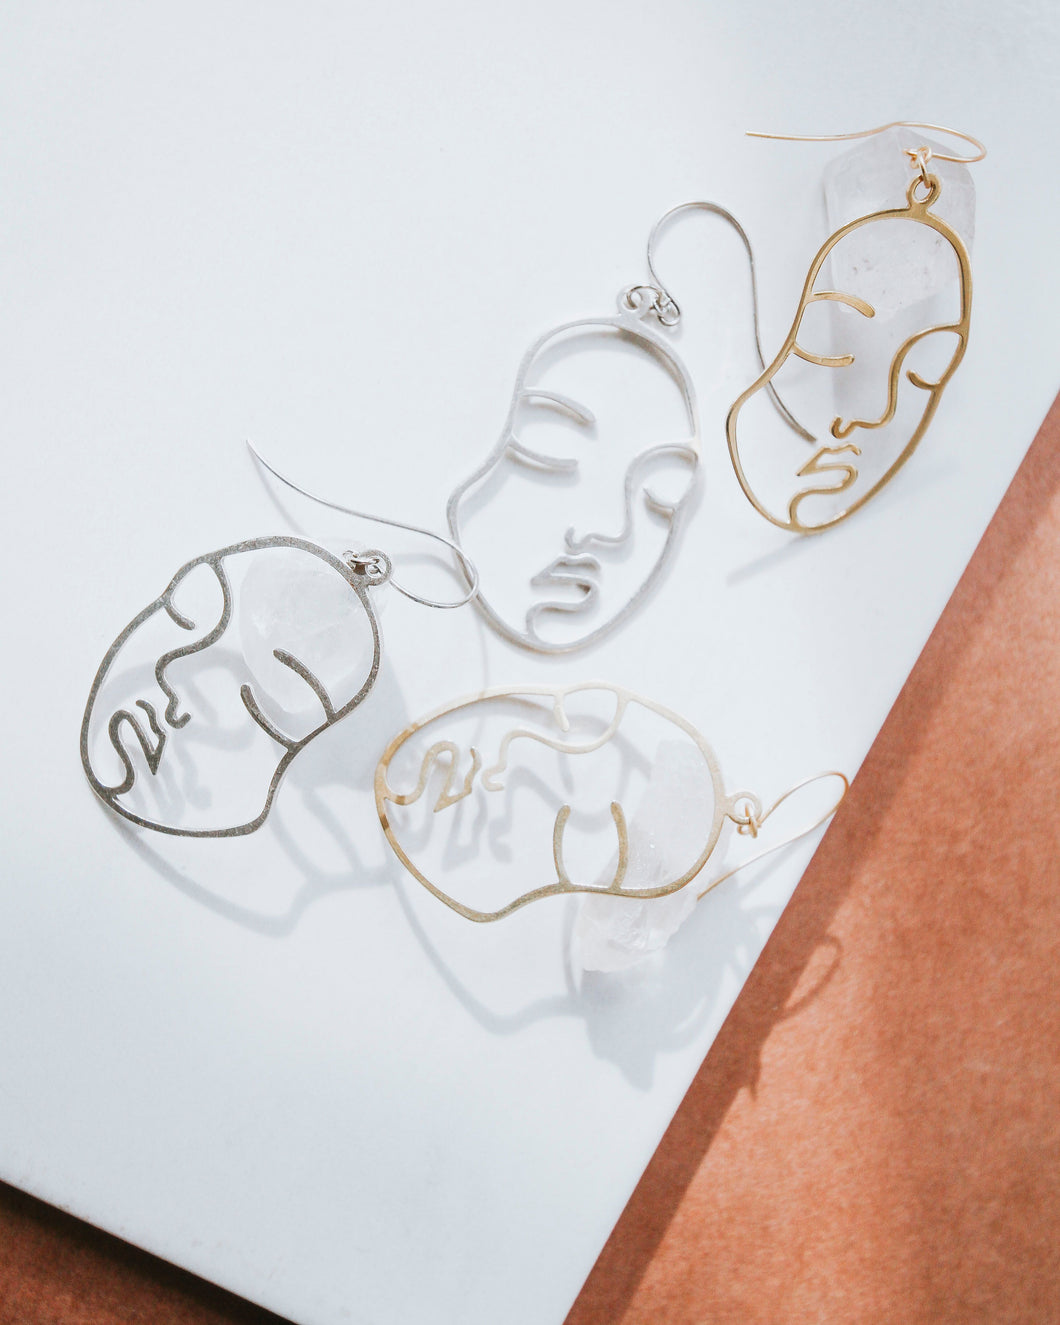 B&B FACE THE DAY EARRINGS